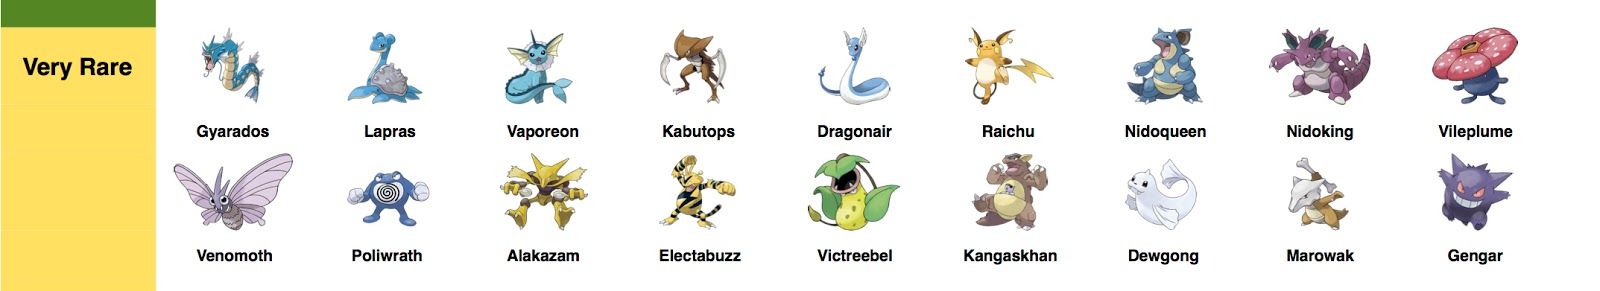 pokemon very rare